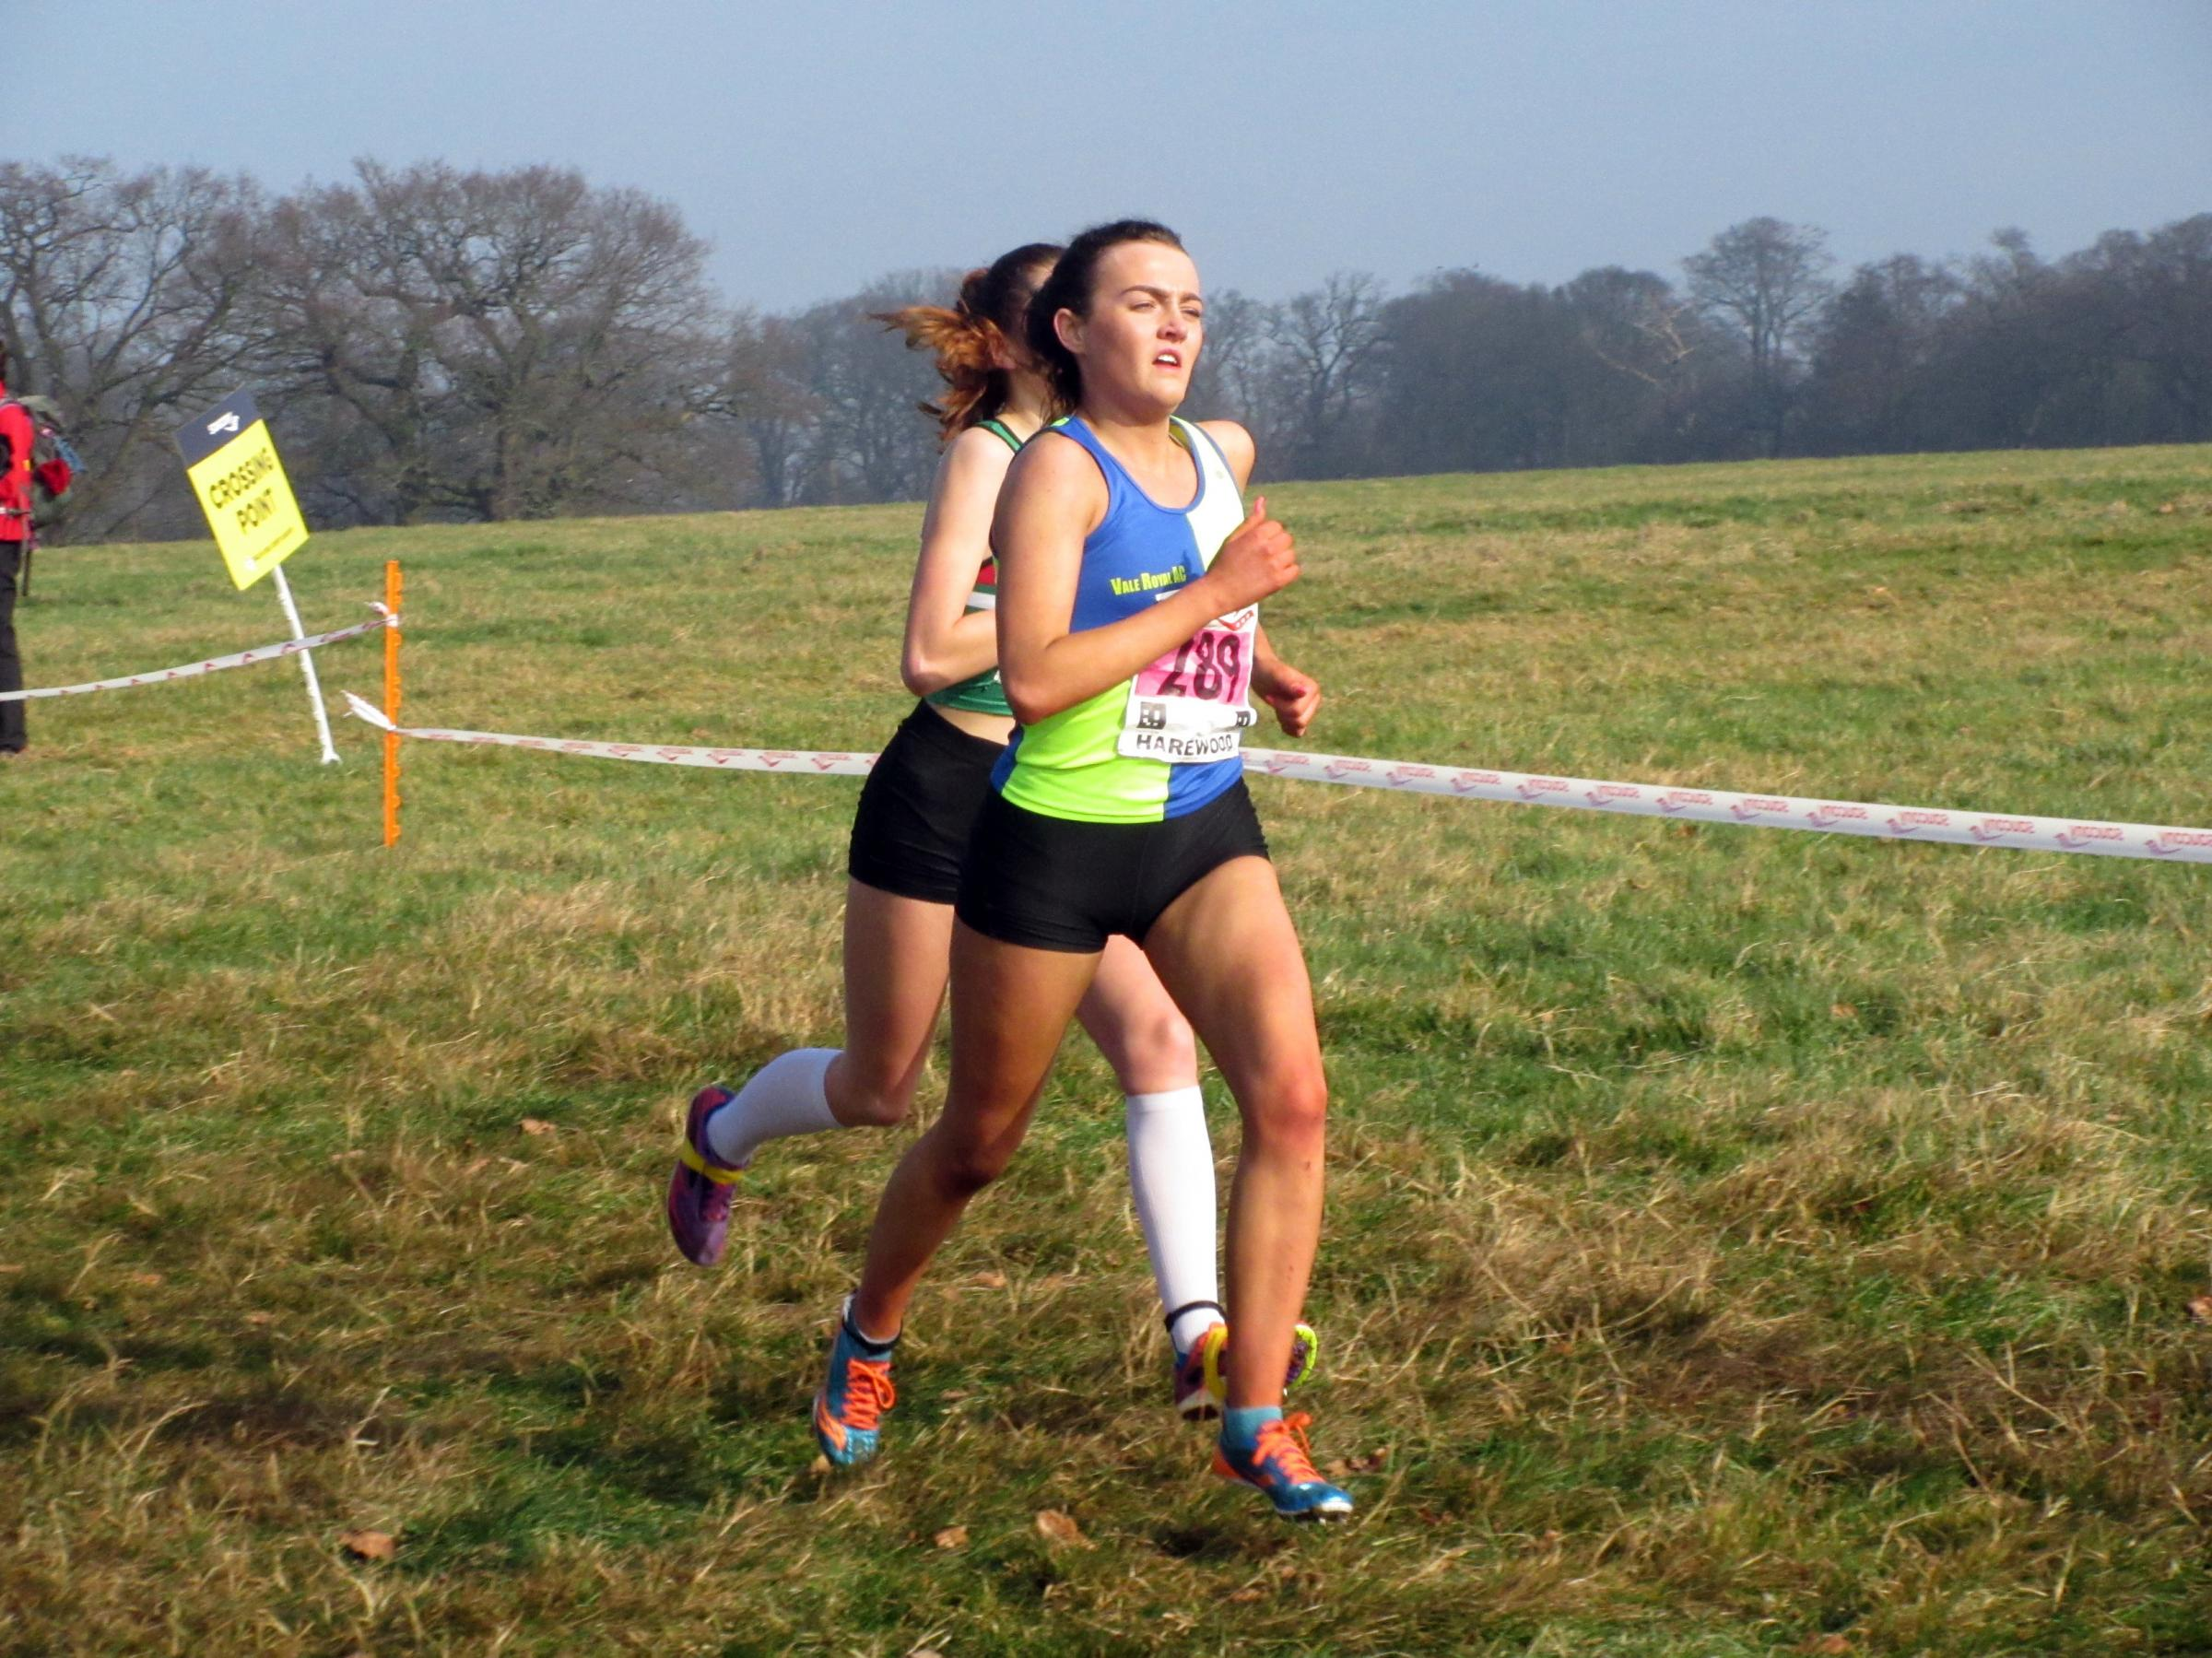 Holly Smith showed her consistency to finish sixth in the under 17s girls' race at the English National Cross Country Championships. She was fourth in the same category last year. Picture: Rob Brown/Vale Royal AC